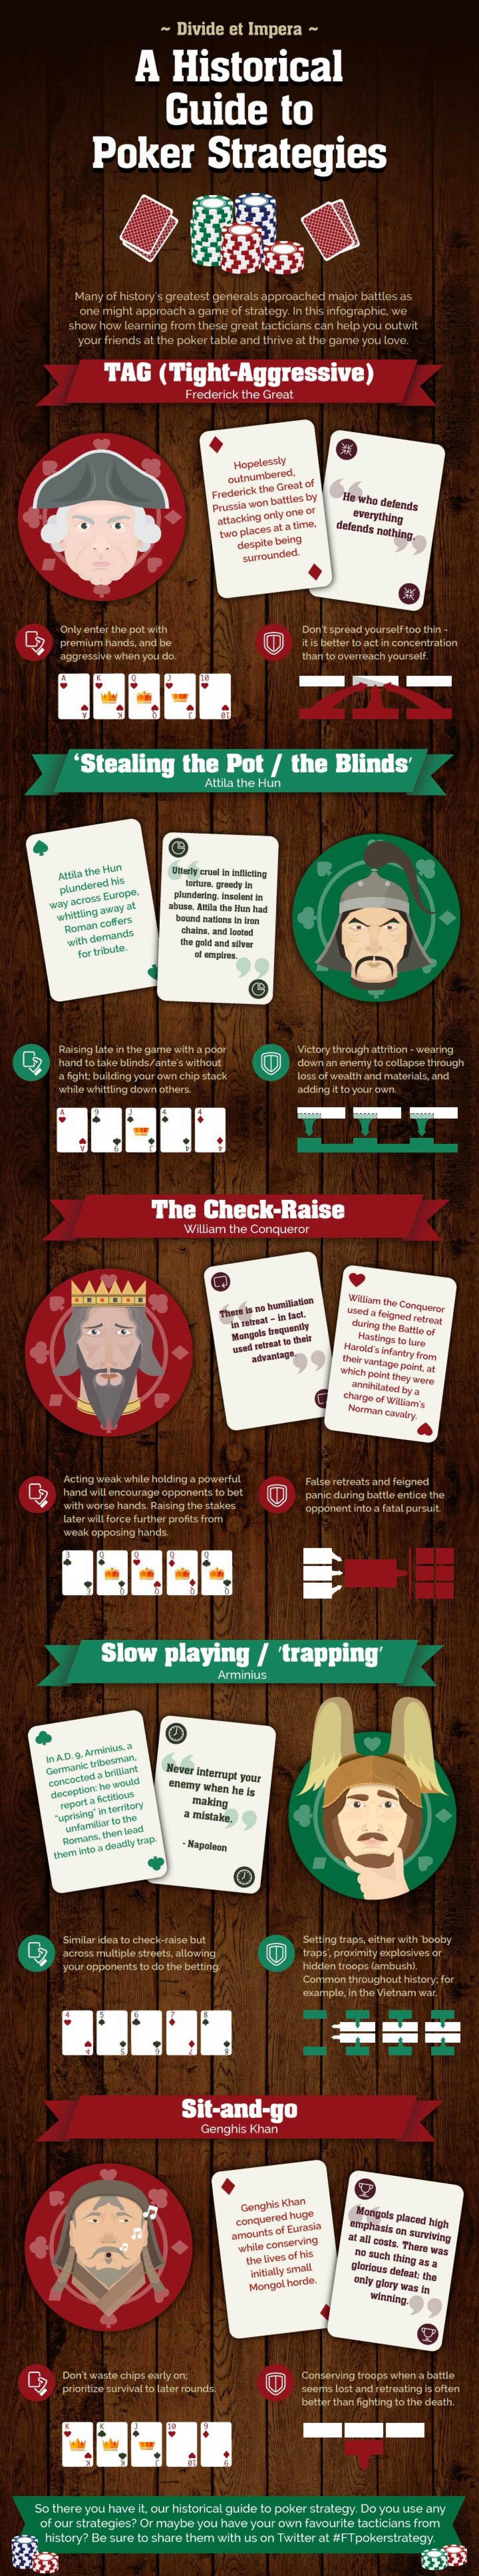 A Historical Guide to Poker Strategies Infographic